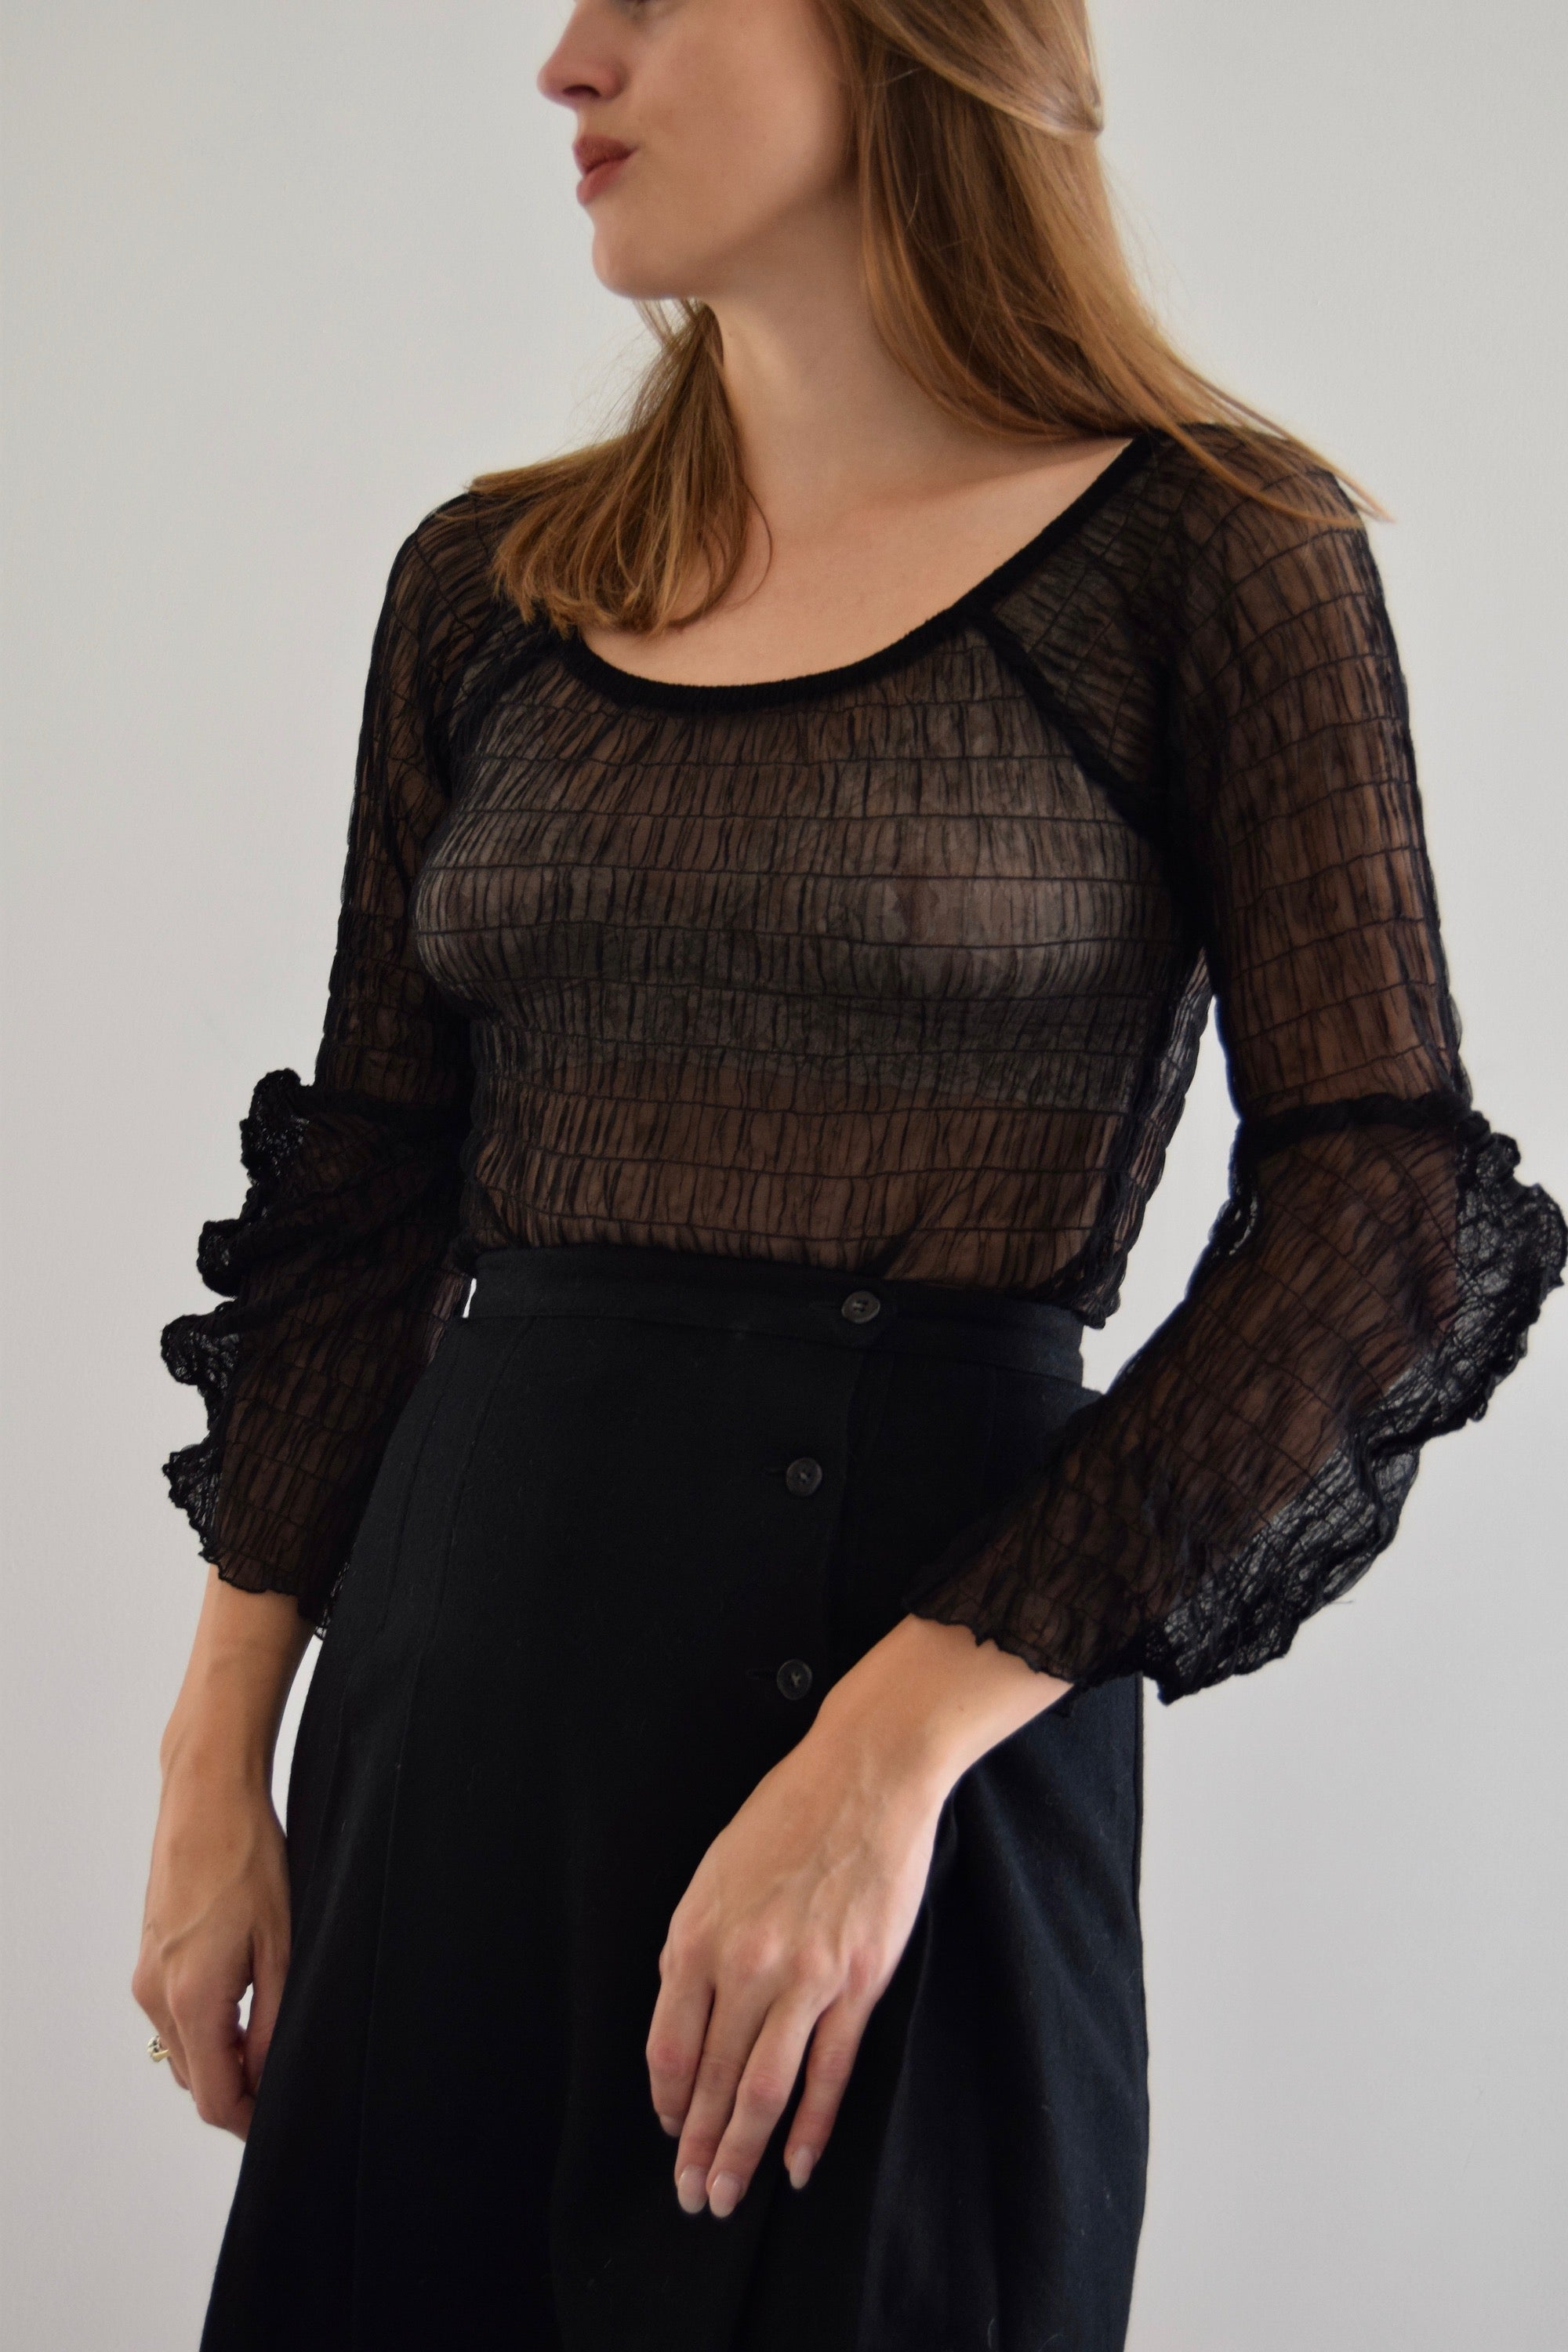 90's Sheer Black Renaissance Top FREE SHIPPING